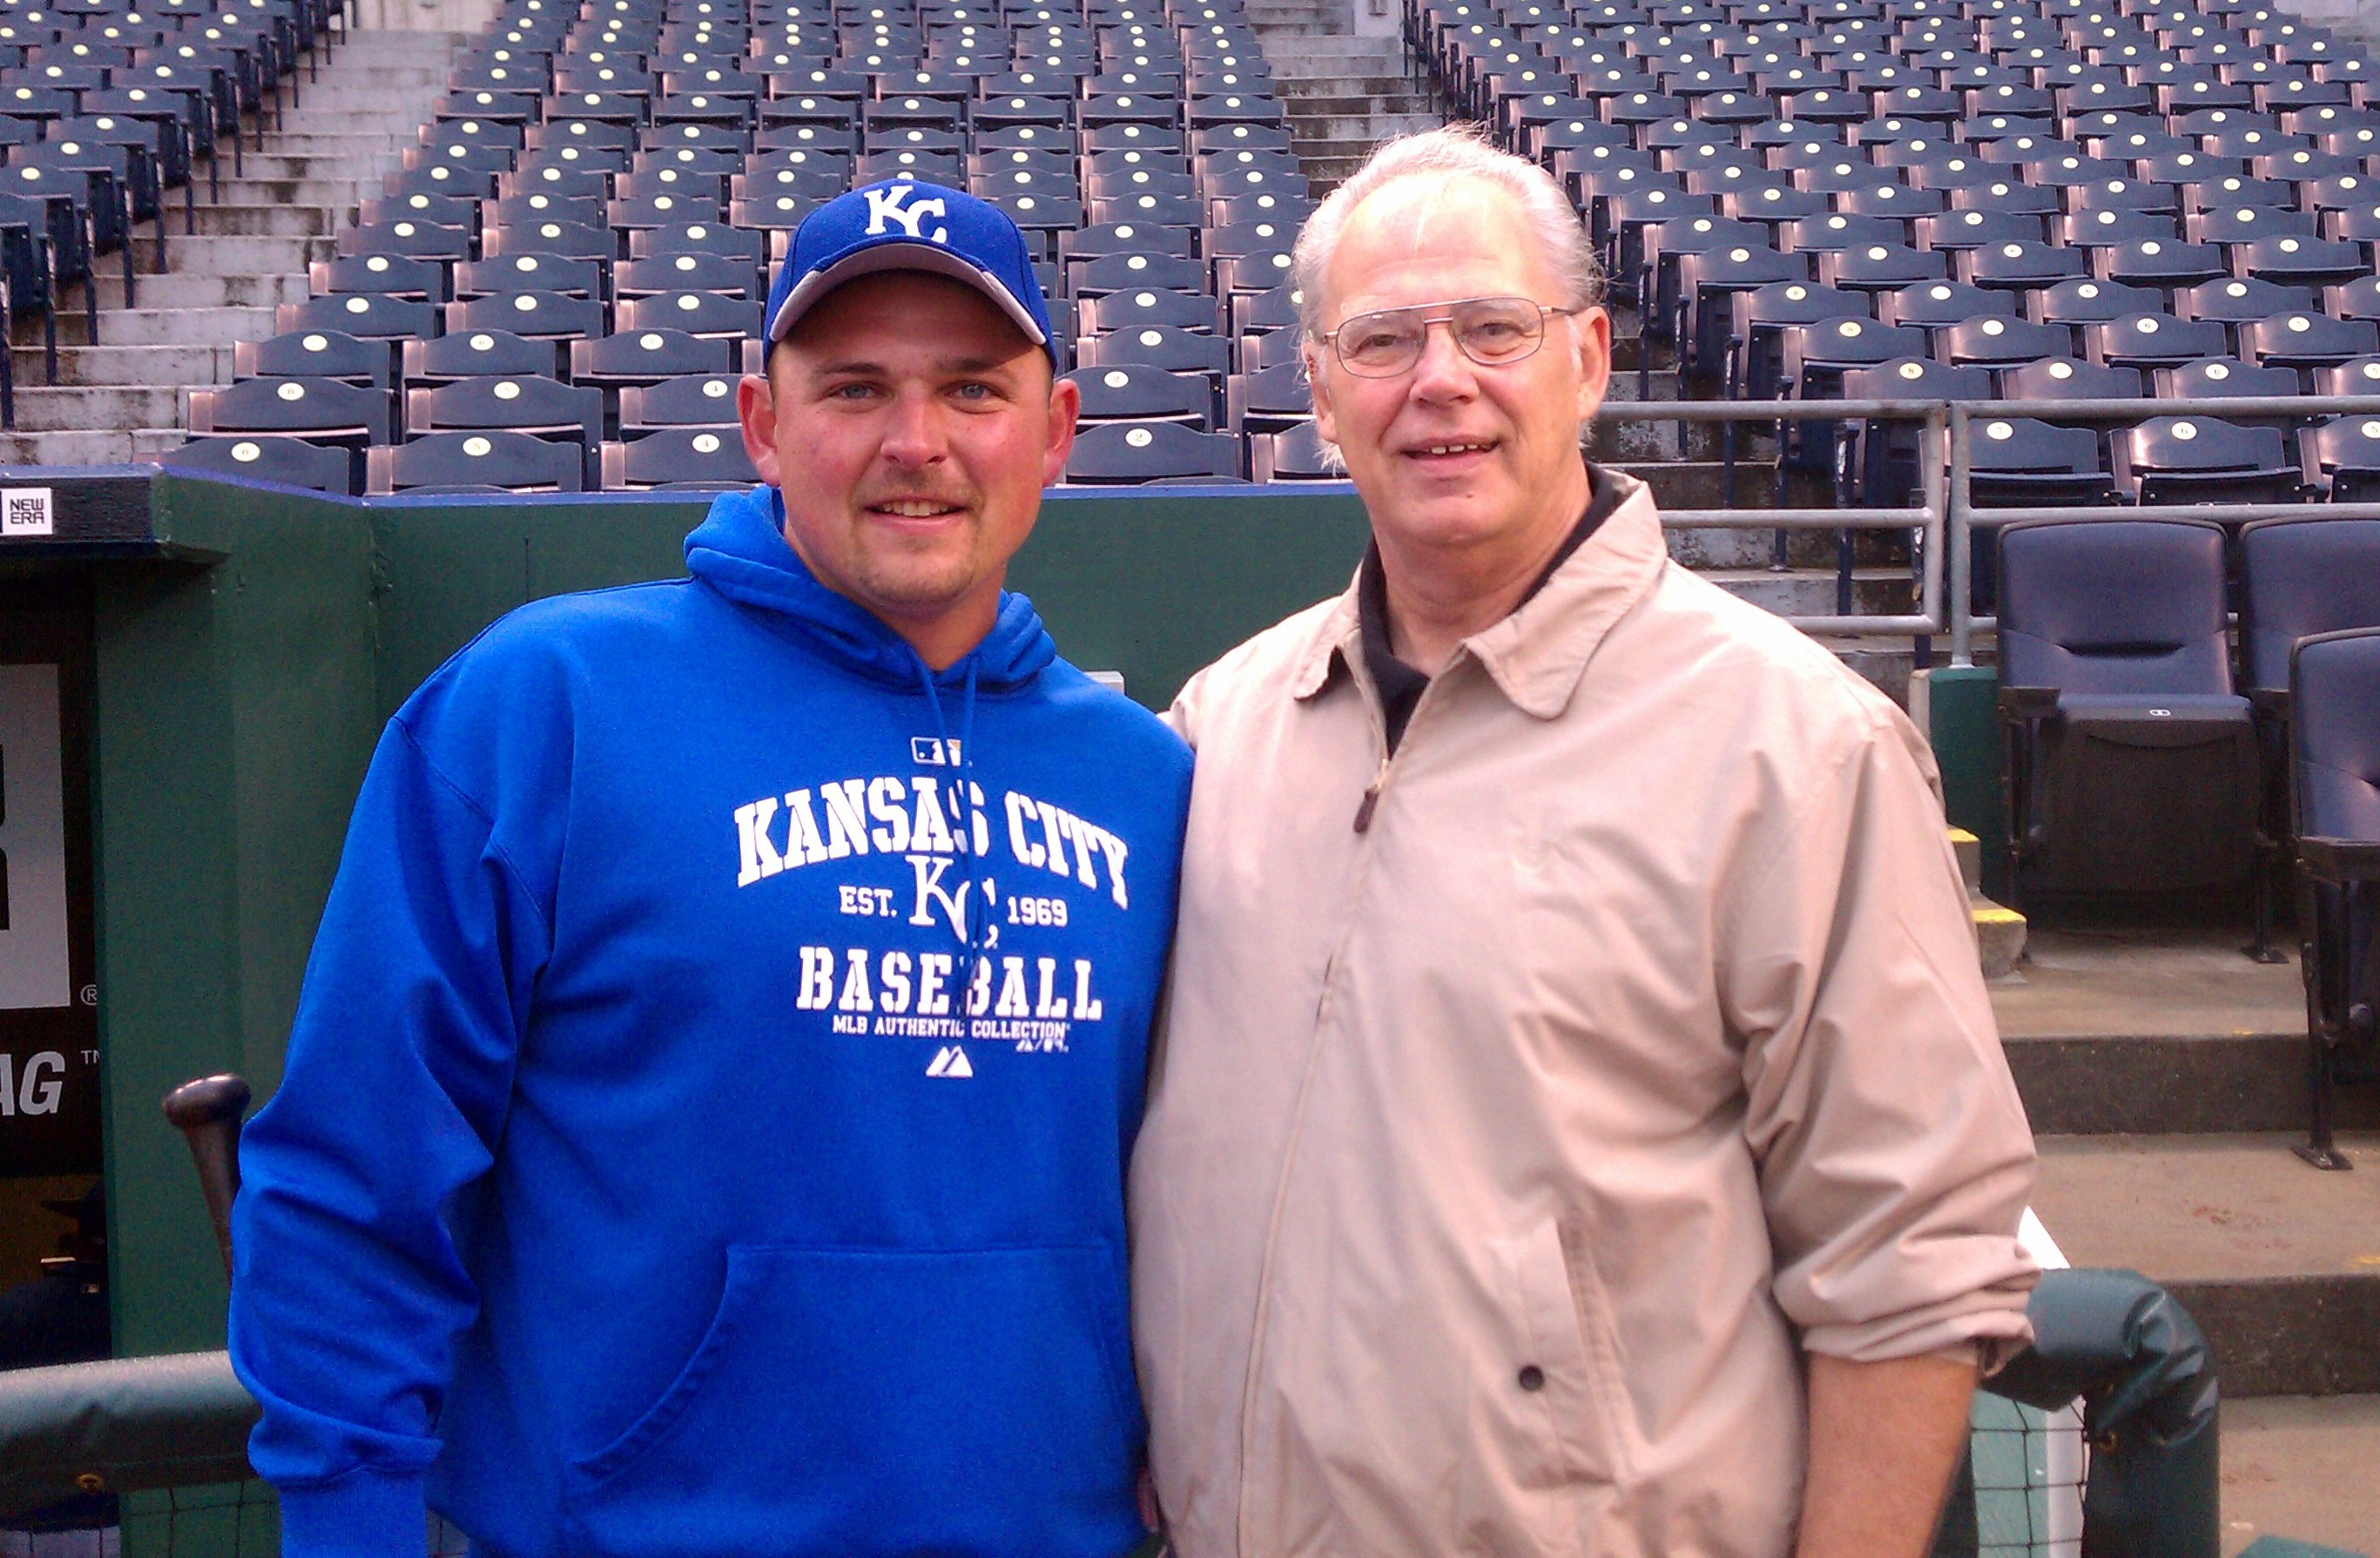 Billy Butler of the 2011 Royals meets Bill Butler of the